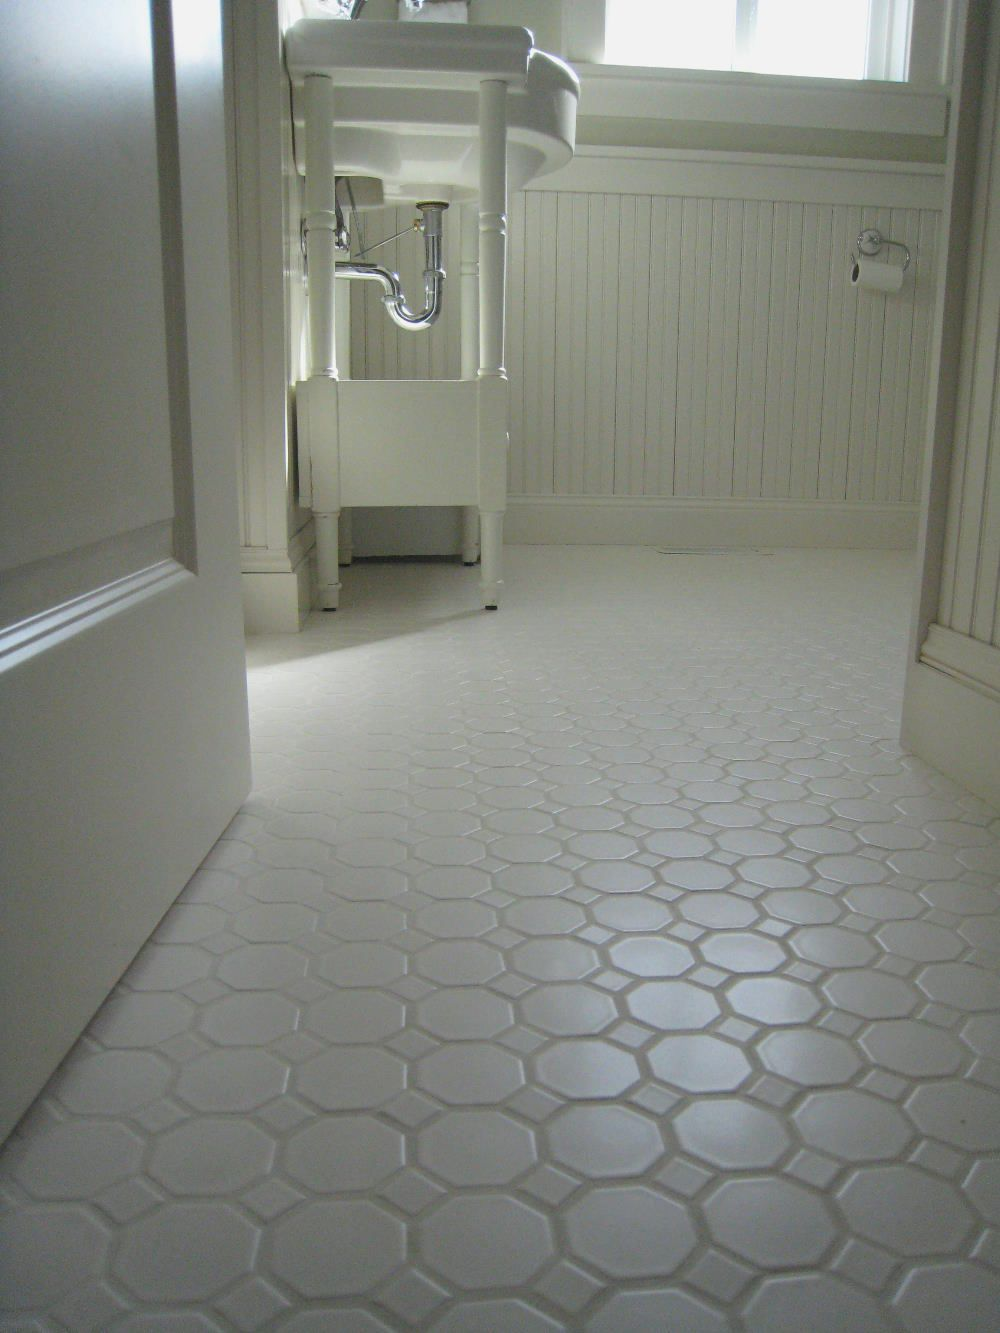 Non slip bathroom floor tiles more picture non slip Images of bathroom tile floors